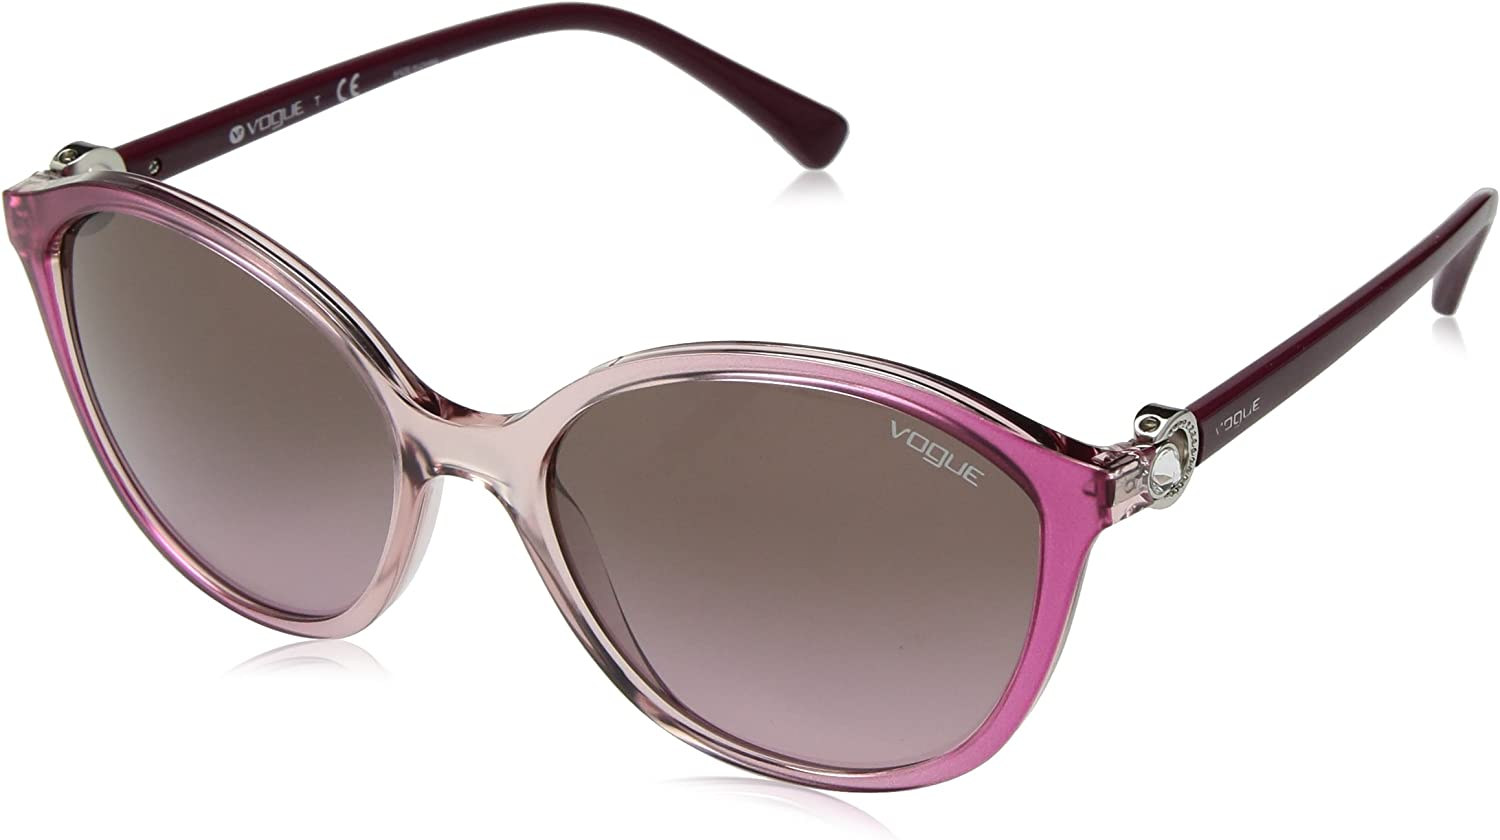 VOGUE Women's 0vo5229sb Oval Sunglasses TRANSPARENT LIGHT PINK GRADIENT 57 mm